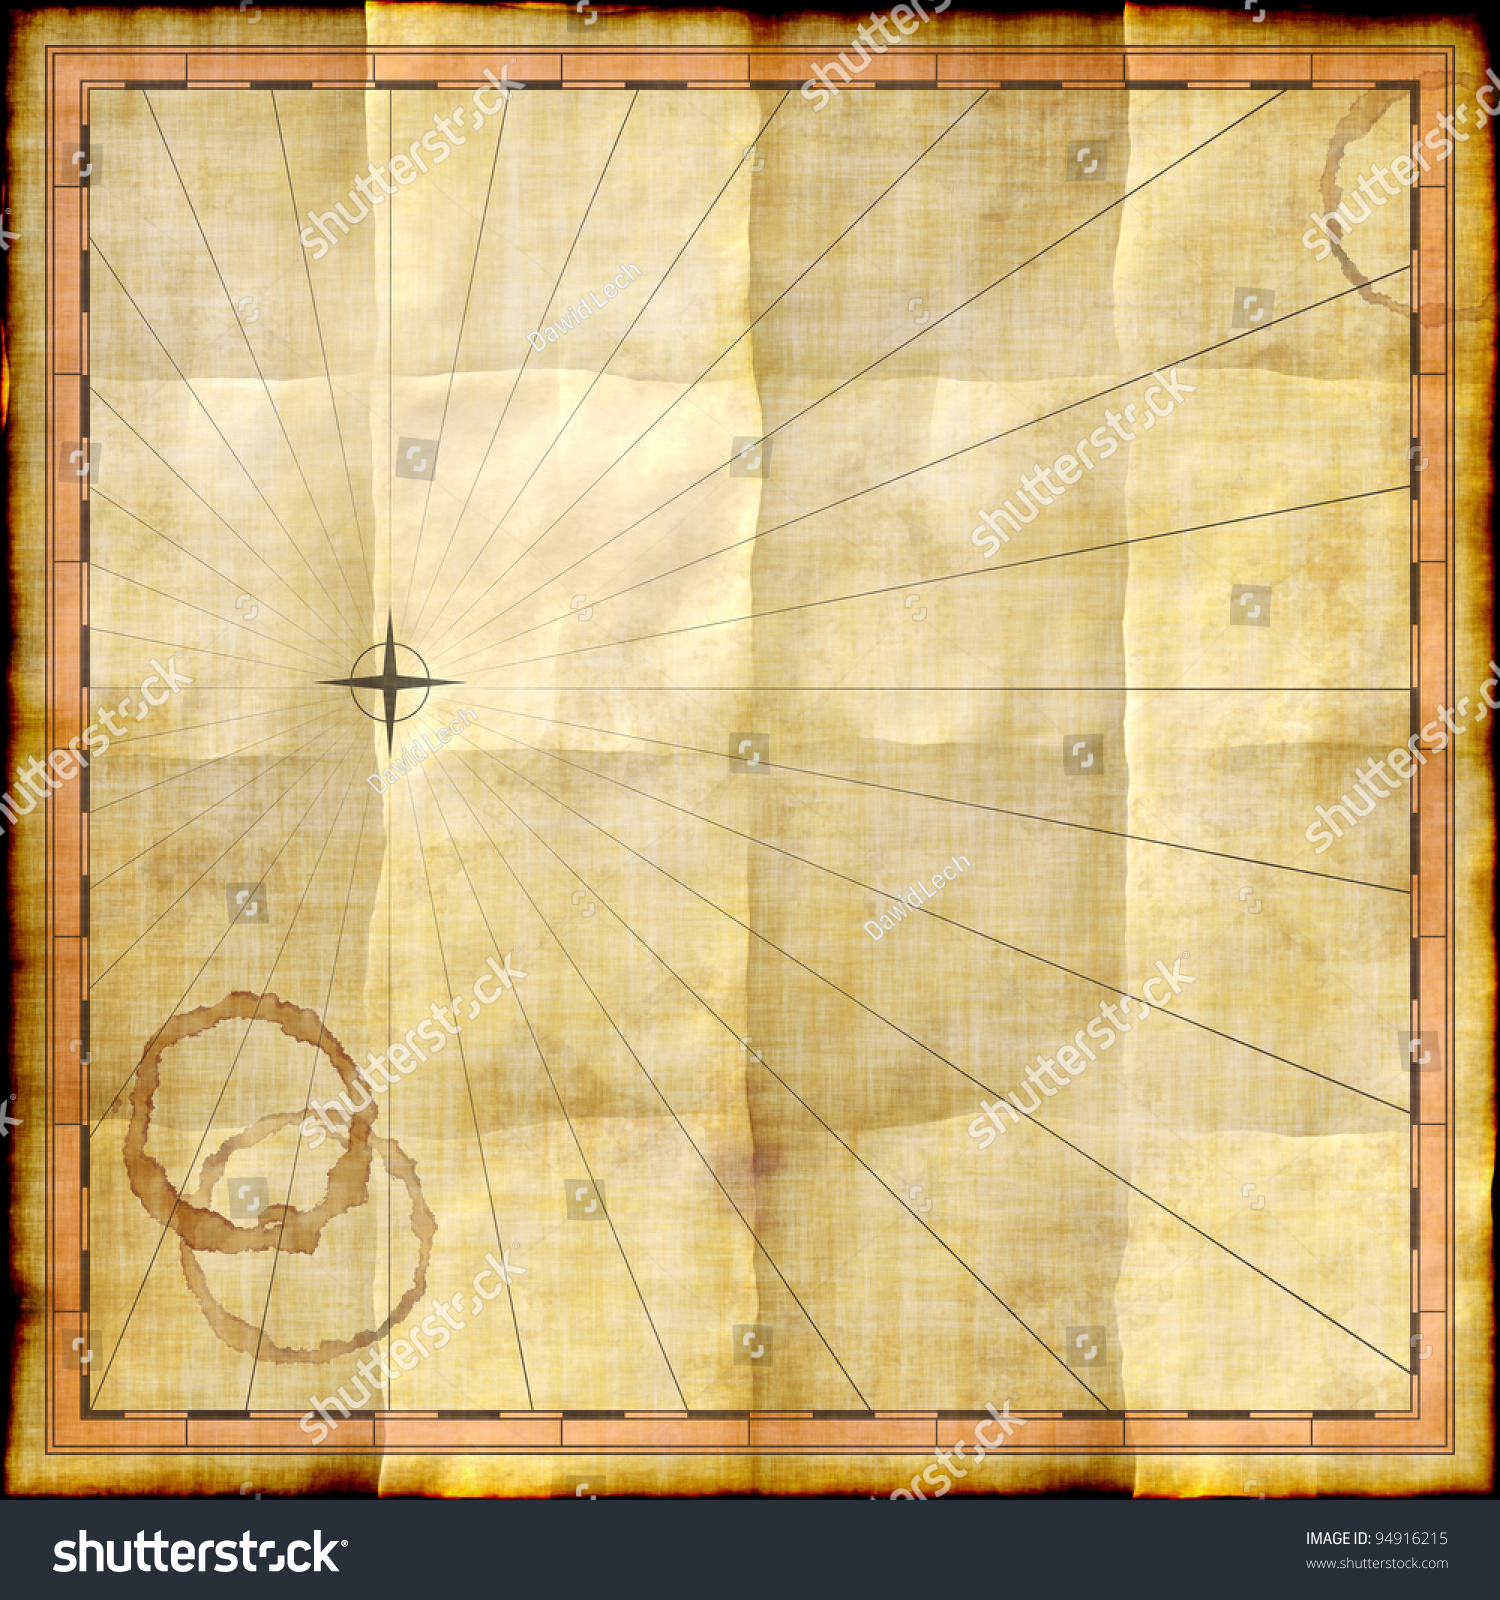 empty map template on old paper stock illustration 94916215, Powerpoint templates